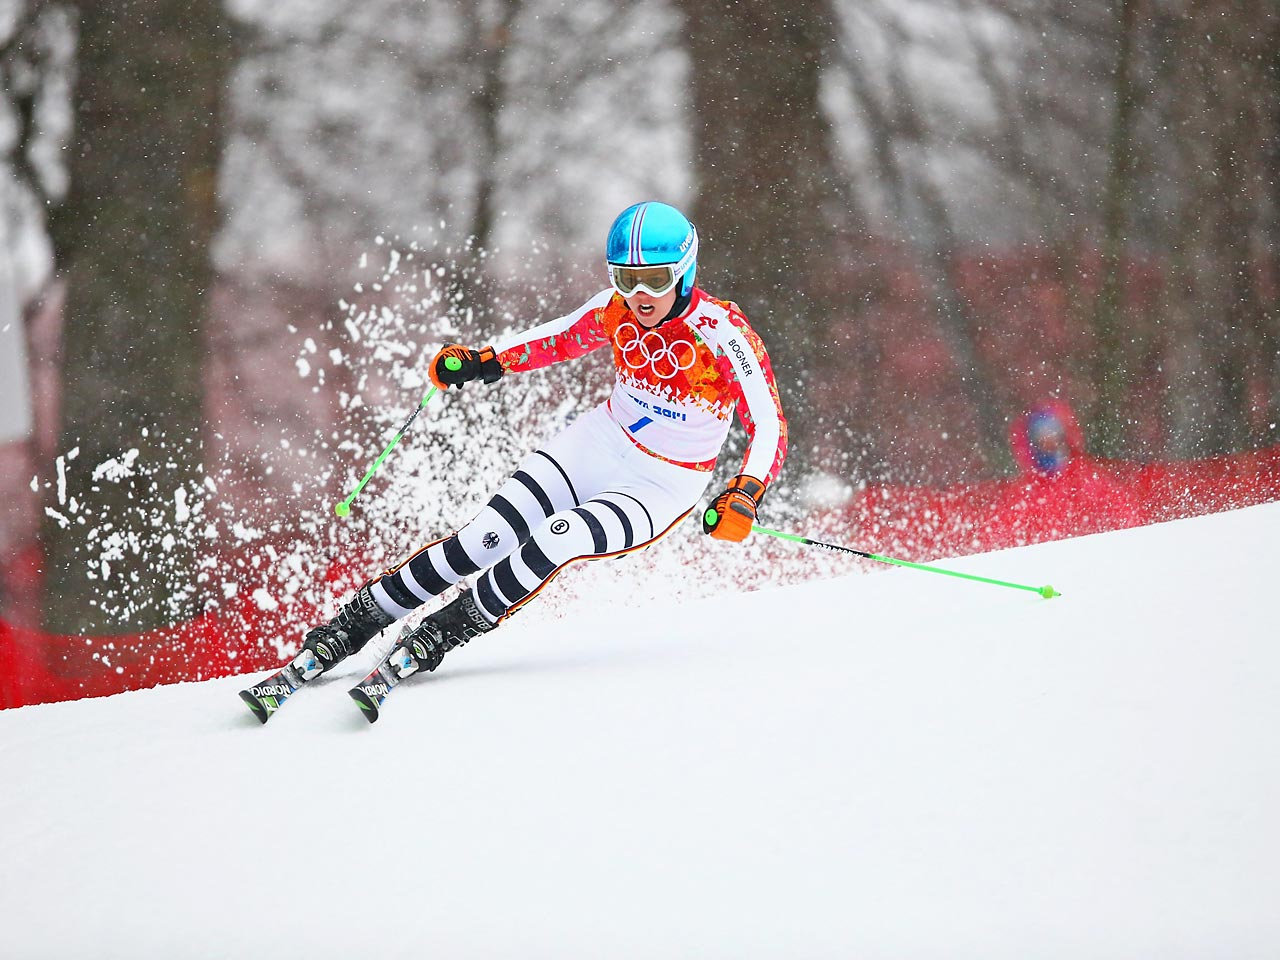 Vikotria Rebensburg of Germany races downhill during the women's giant slalom. She earned a bronze medal in the event.